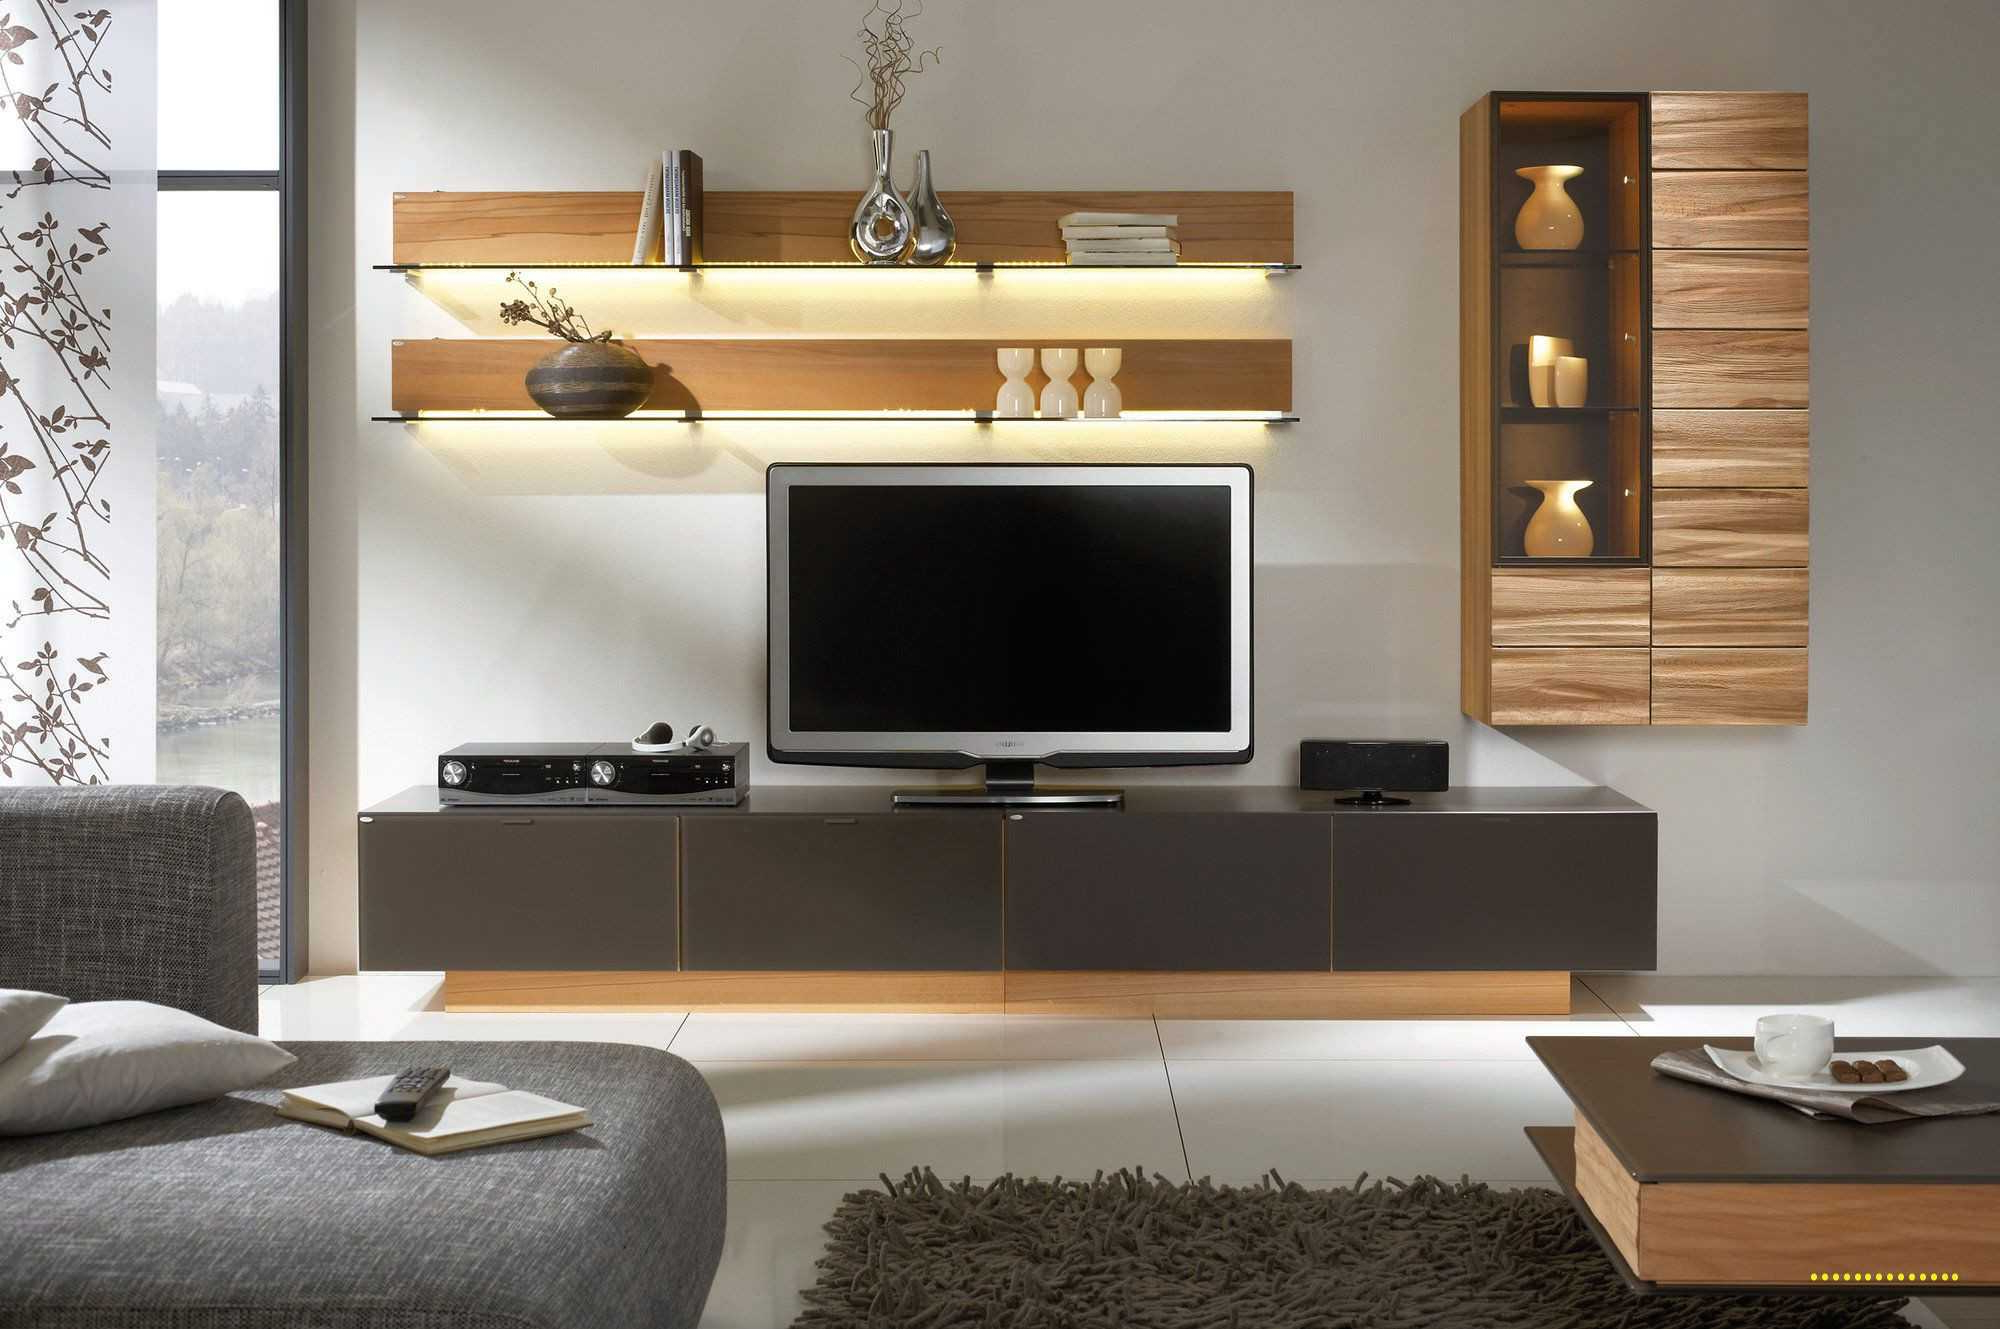 Popular Trendy Tv Stands Regarding Trendy Tv Units Elegant 36 Collection Cabinets For Living Room Wall (View 15 of 20)